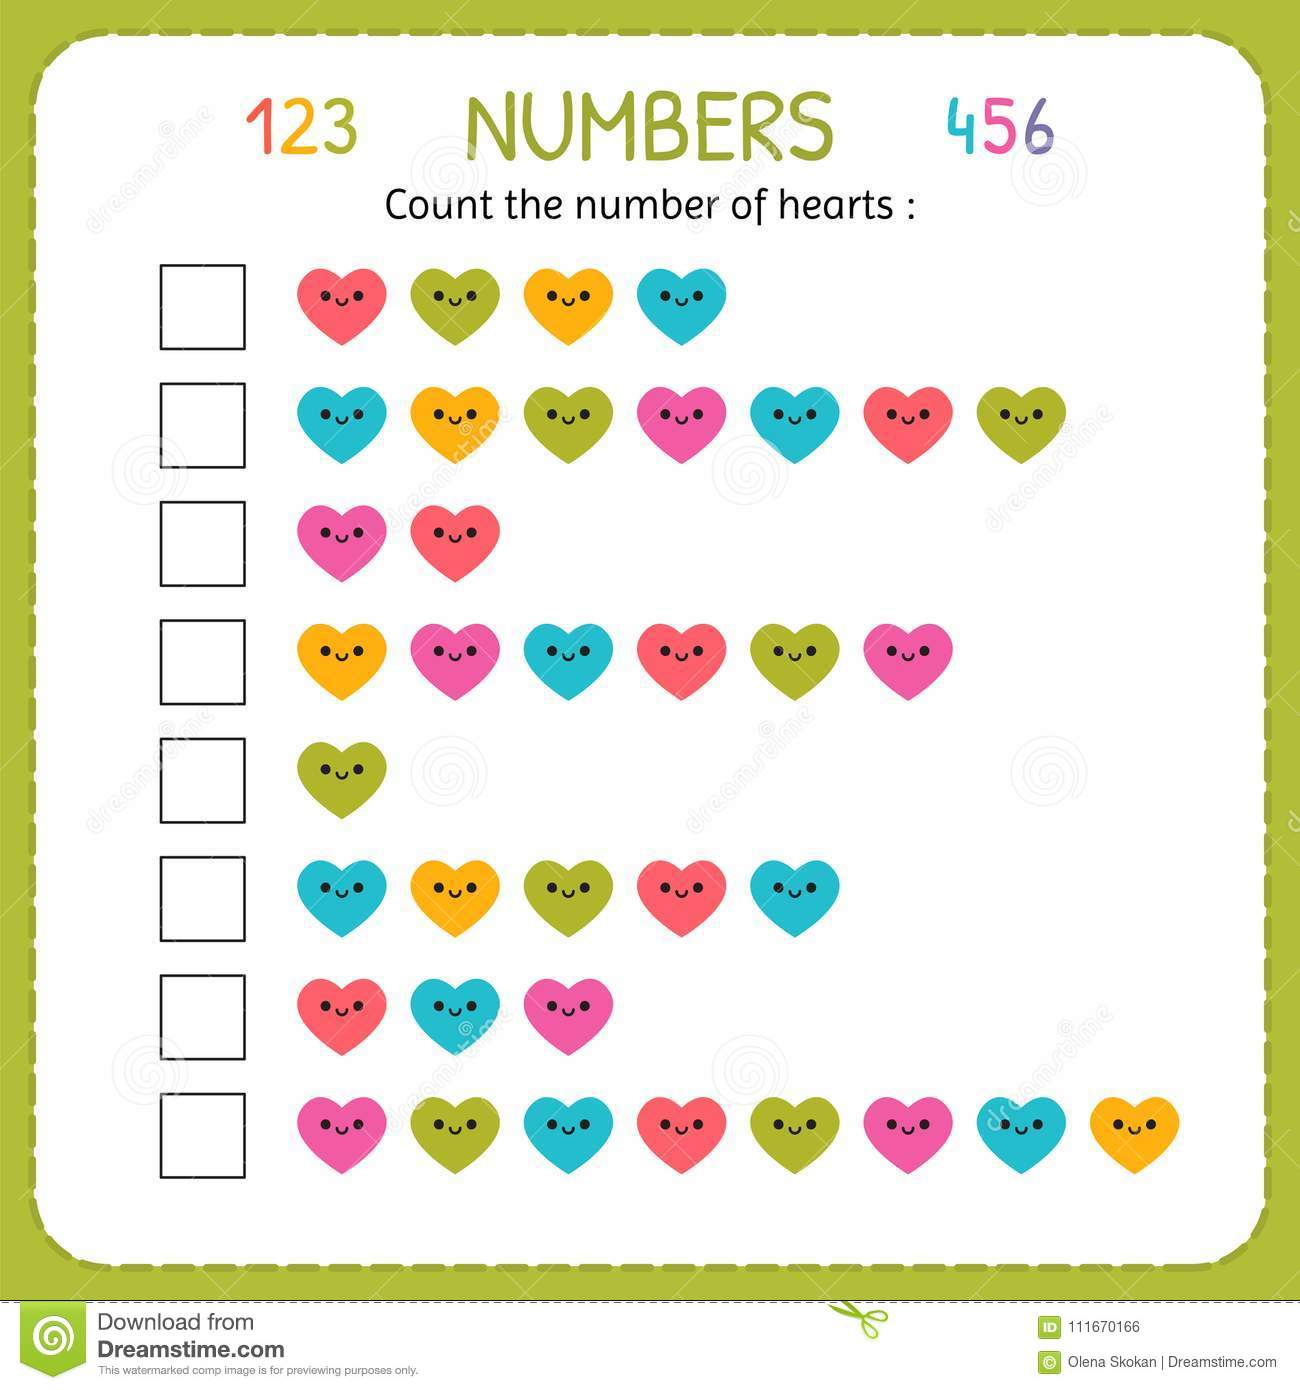 Count The Number Of Hearts Worksheet For Kindergarten And